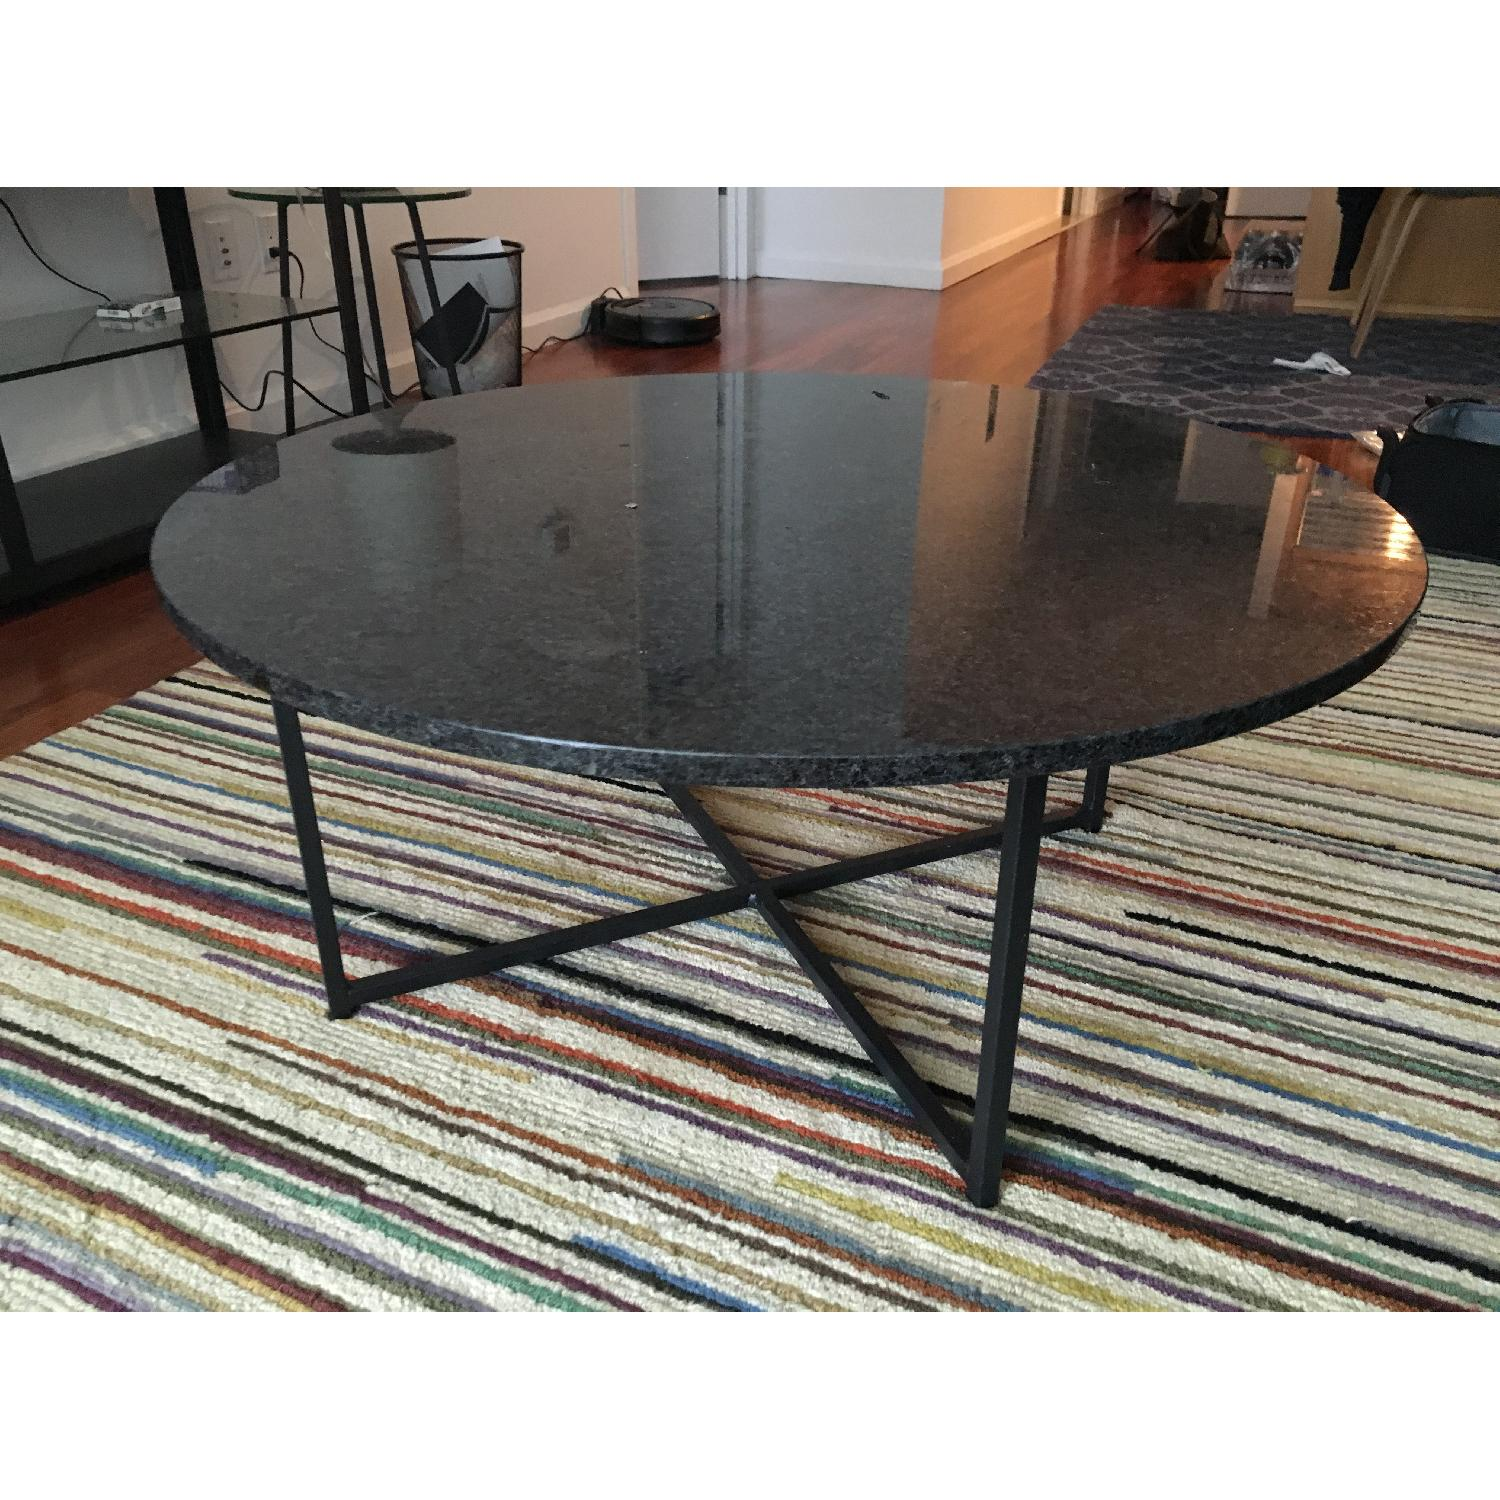 Room & Board Cocktail Table in Natural Steel - image-2